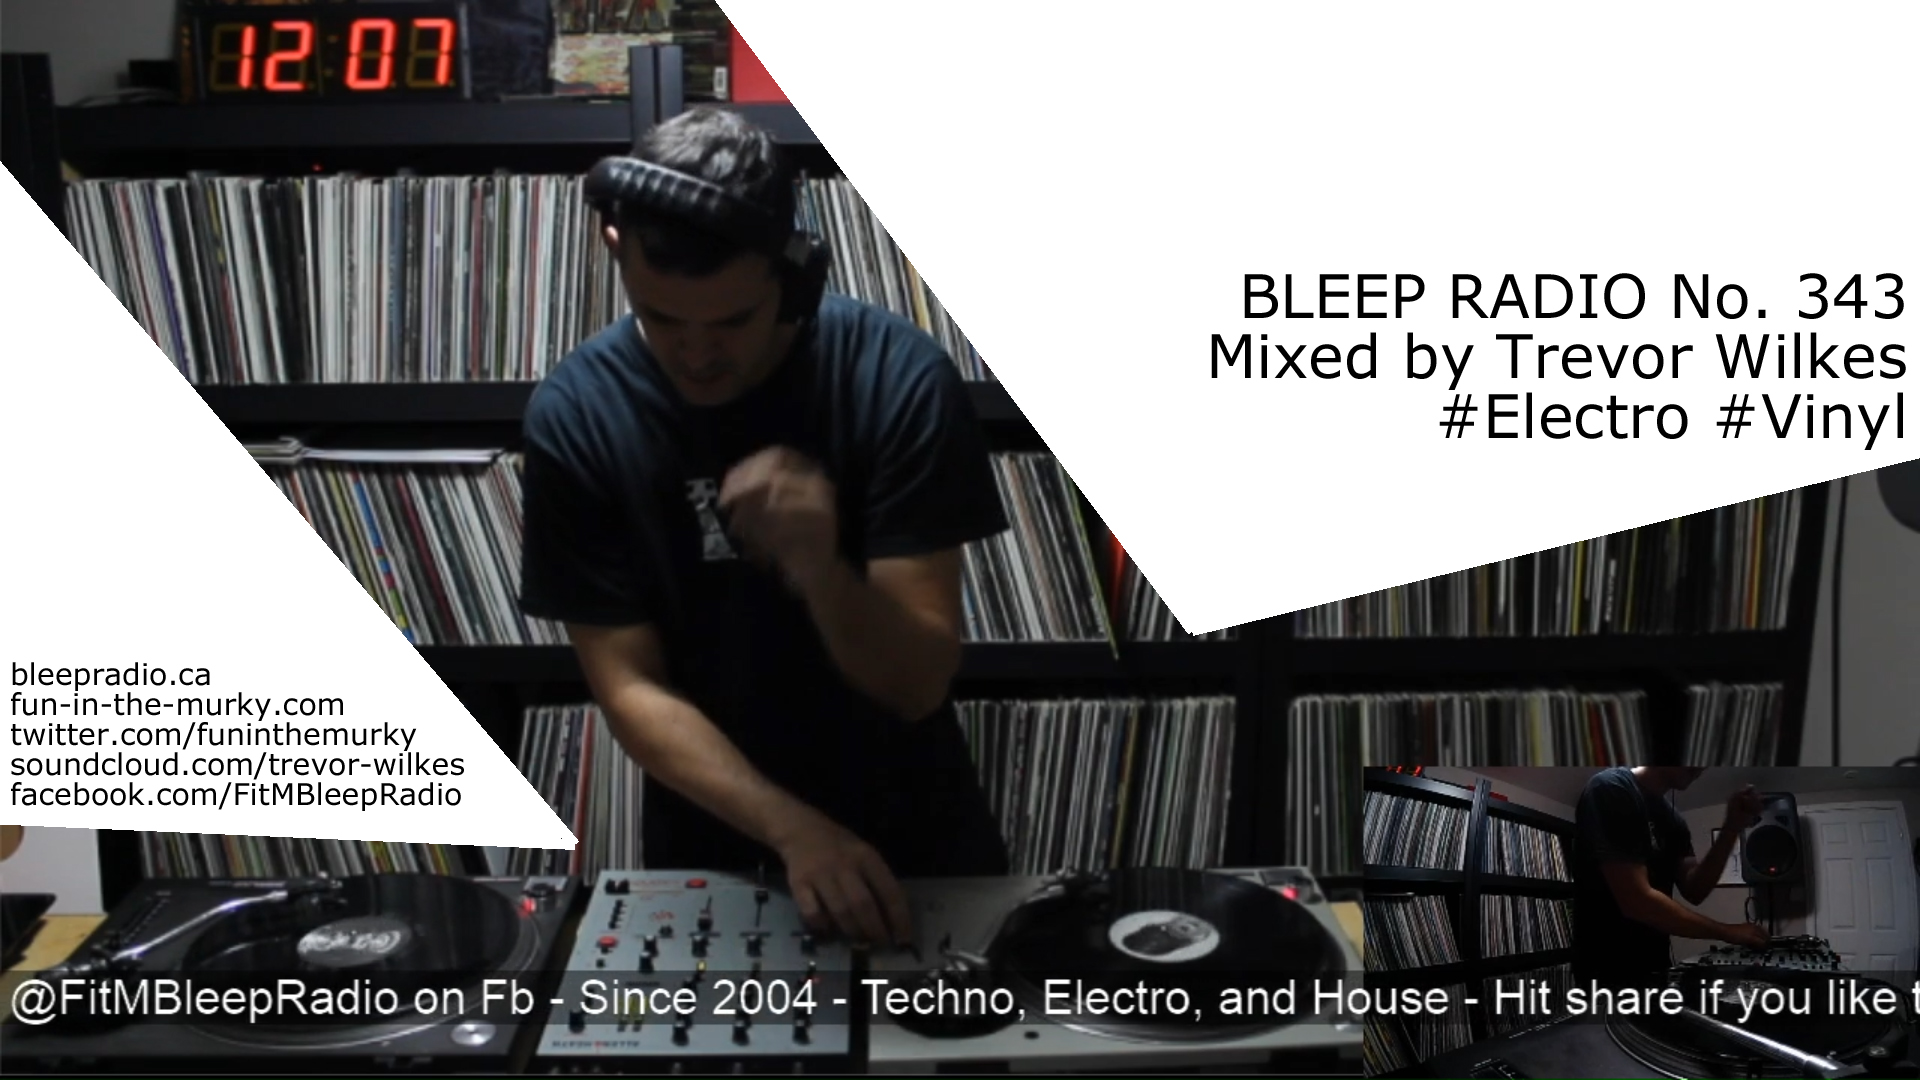 Bleep Radio #343 by Trevor Wilkes